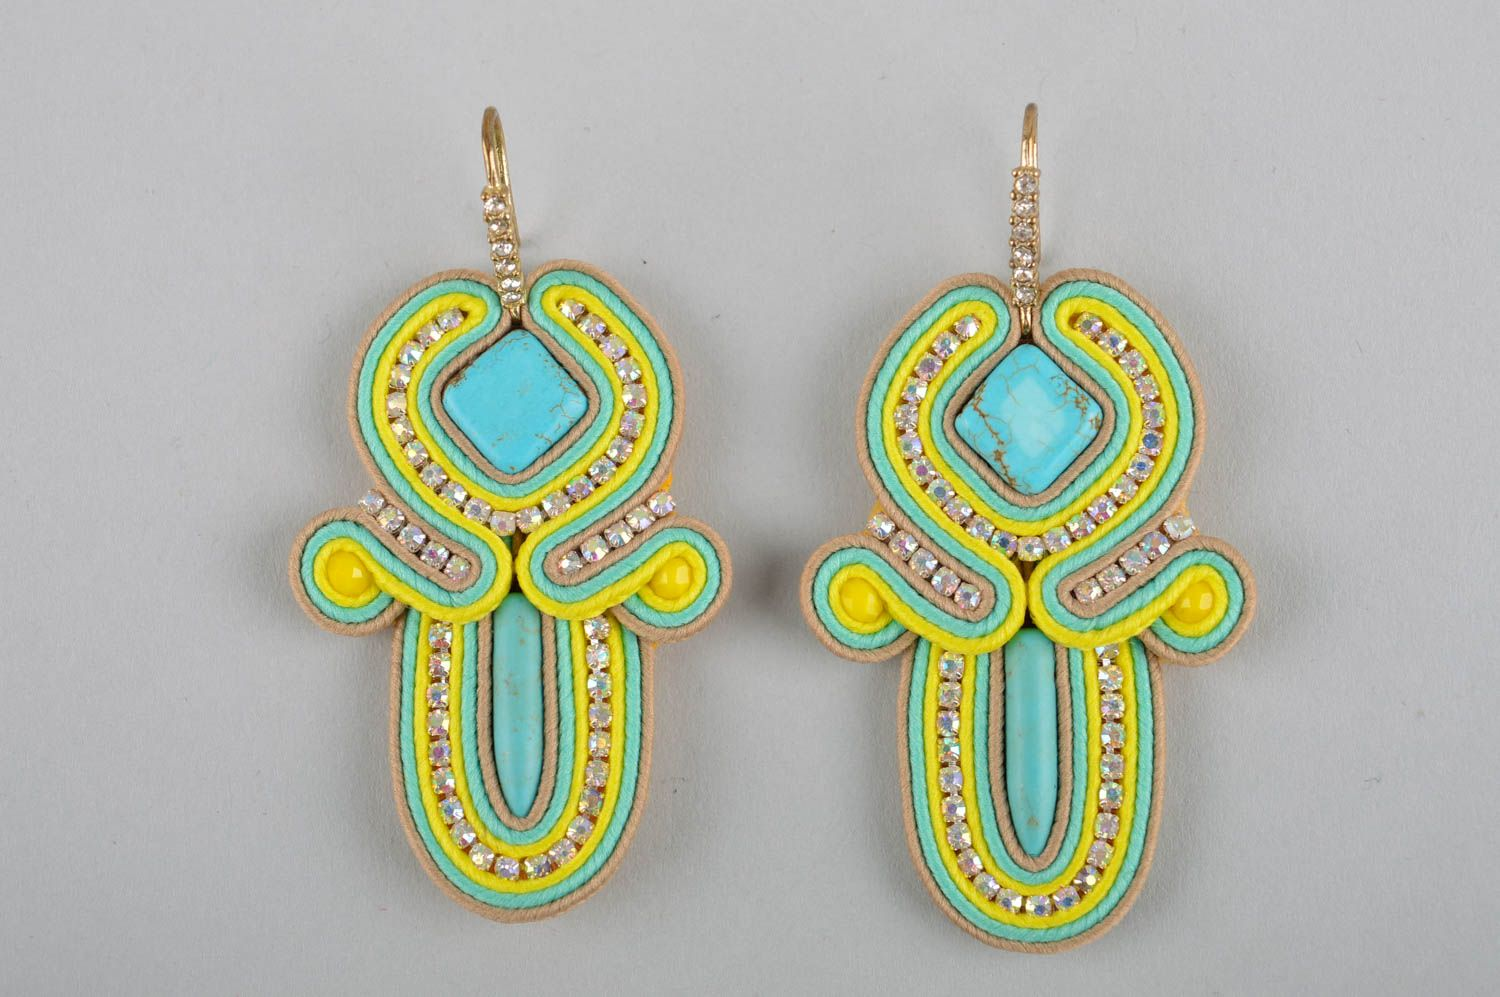 Handmade massive earrings dangling earrings soutache cute earrings gifts for her photo 3